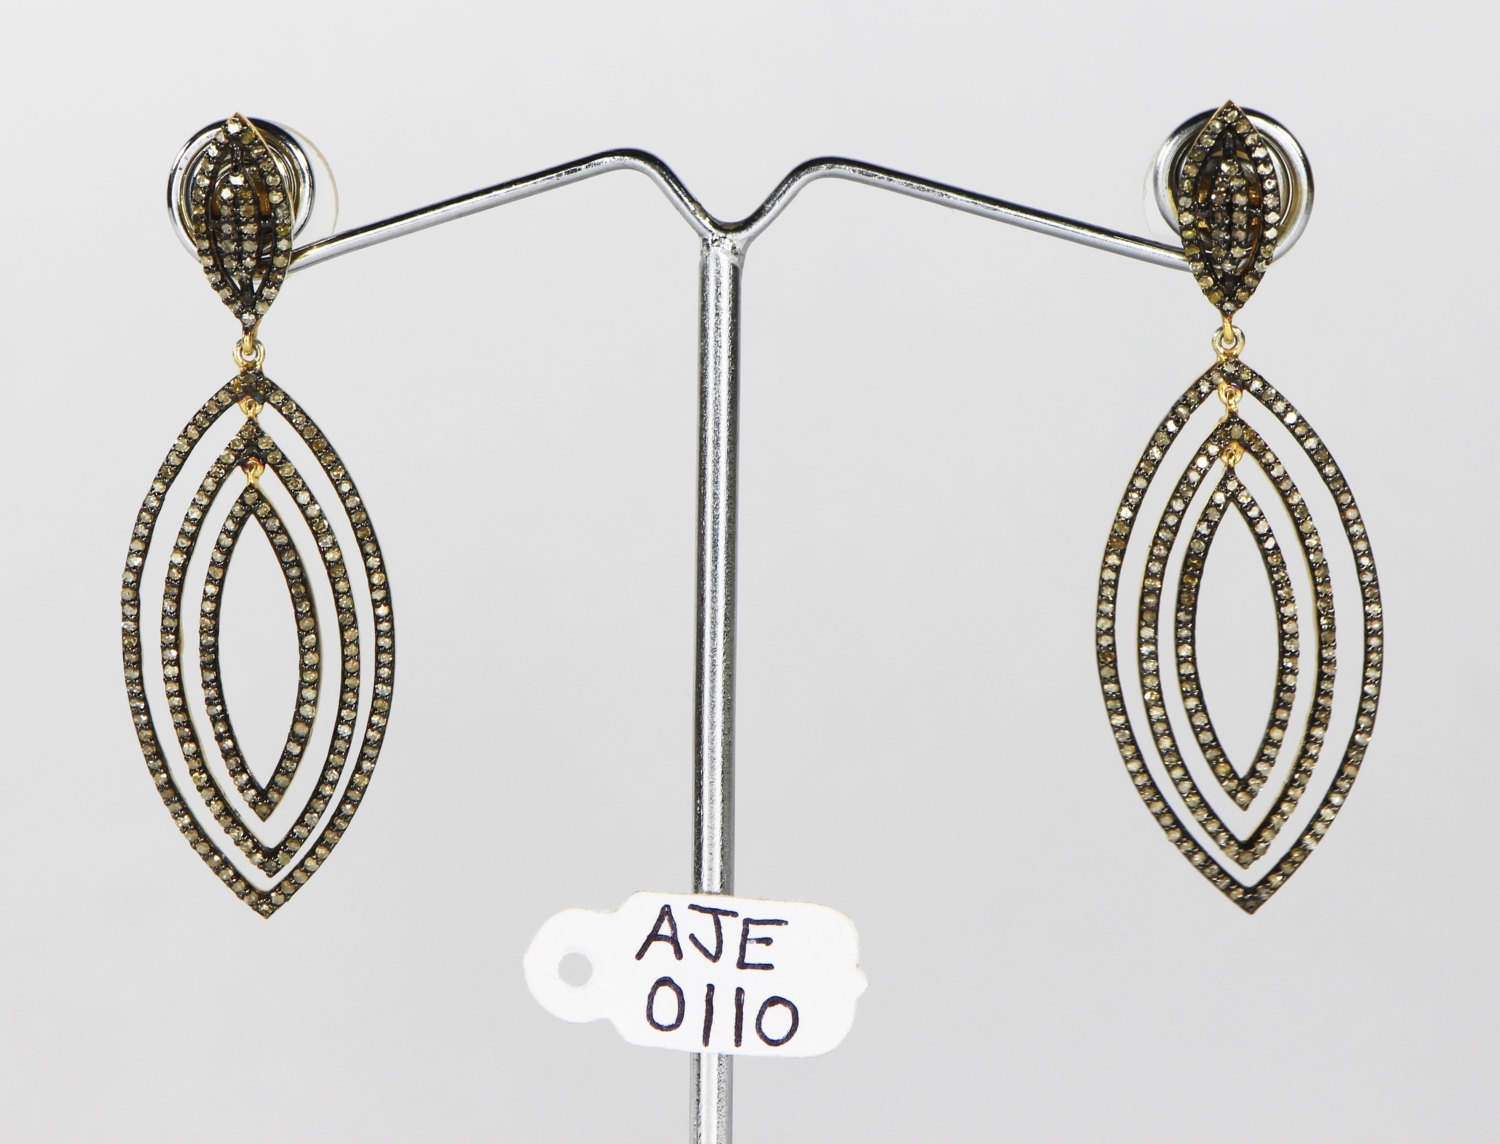 Dangling Oxidized Earrings 14kt Gold .925 Sterling Silver with Pave Diamonds